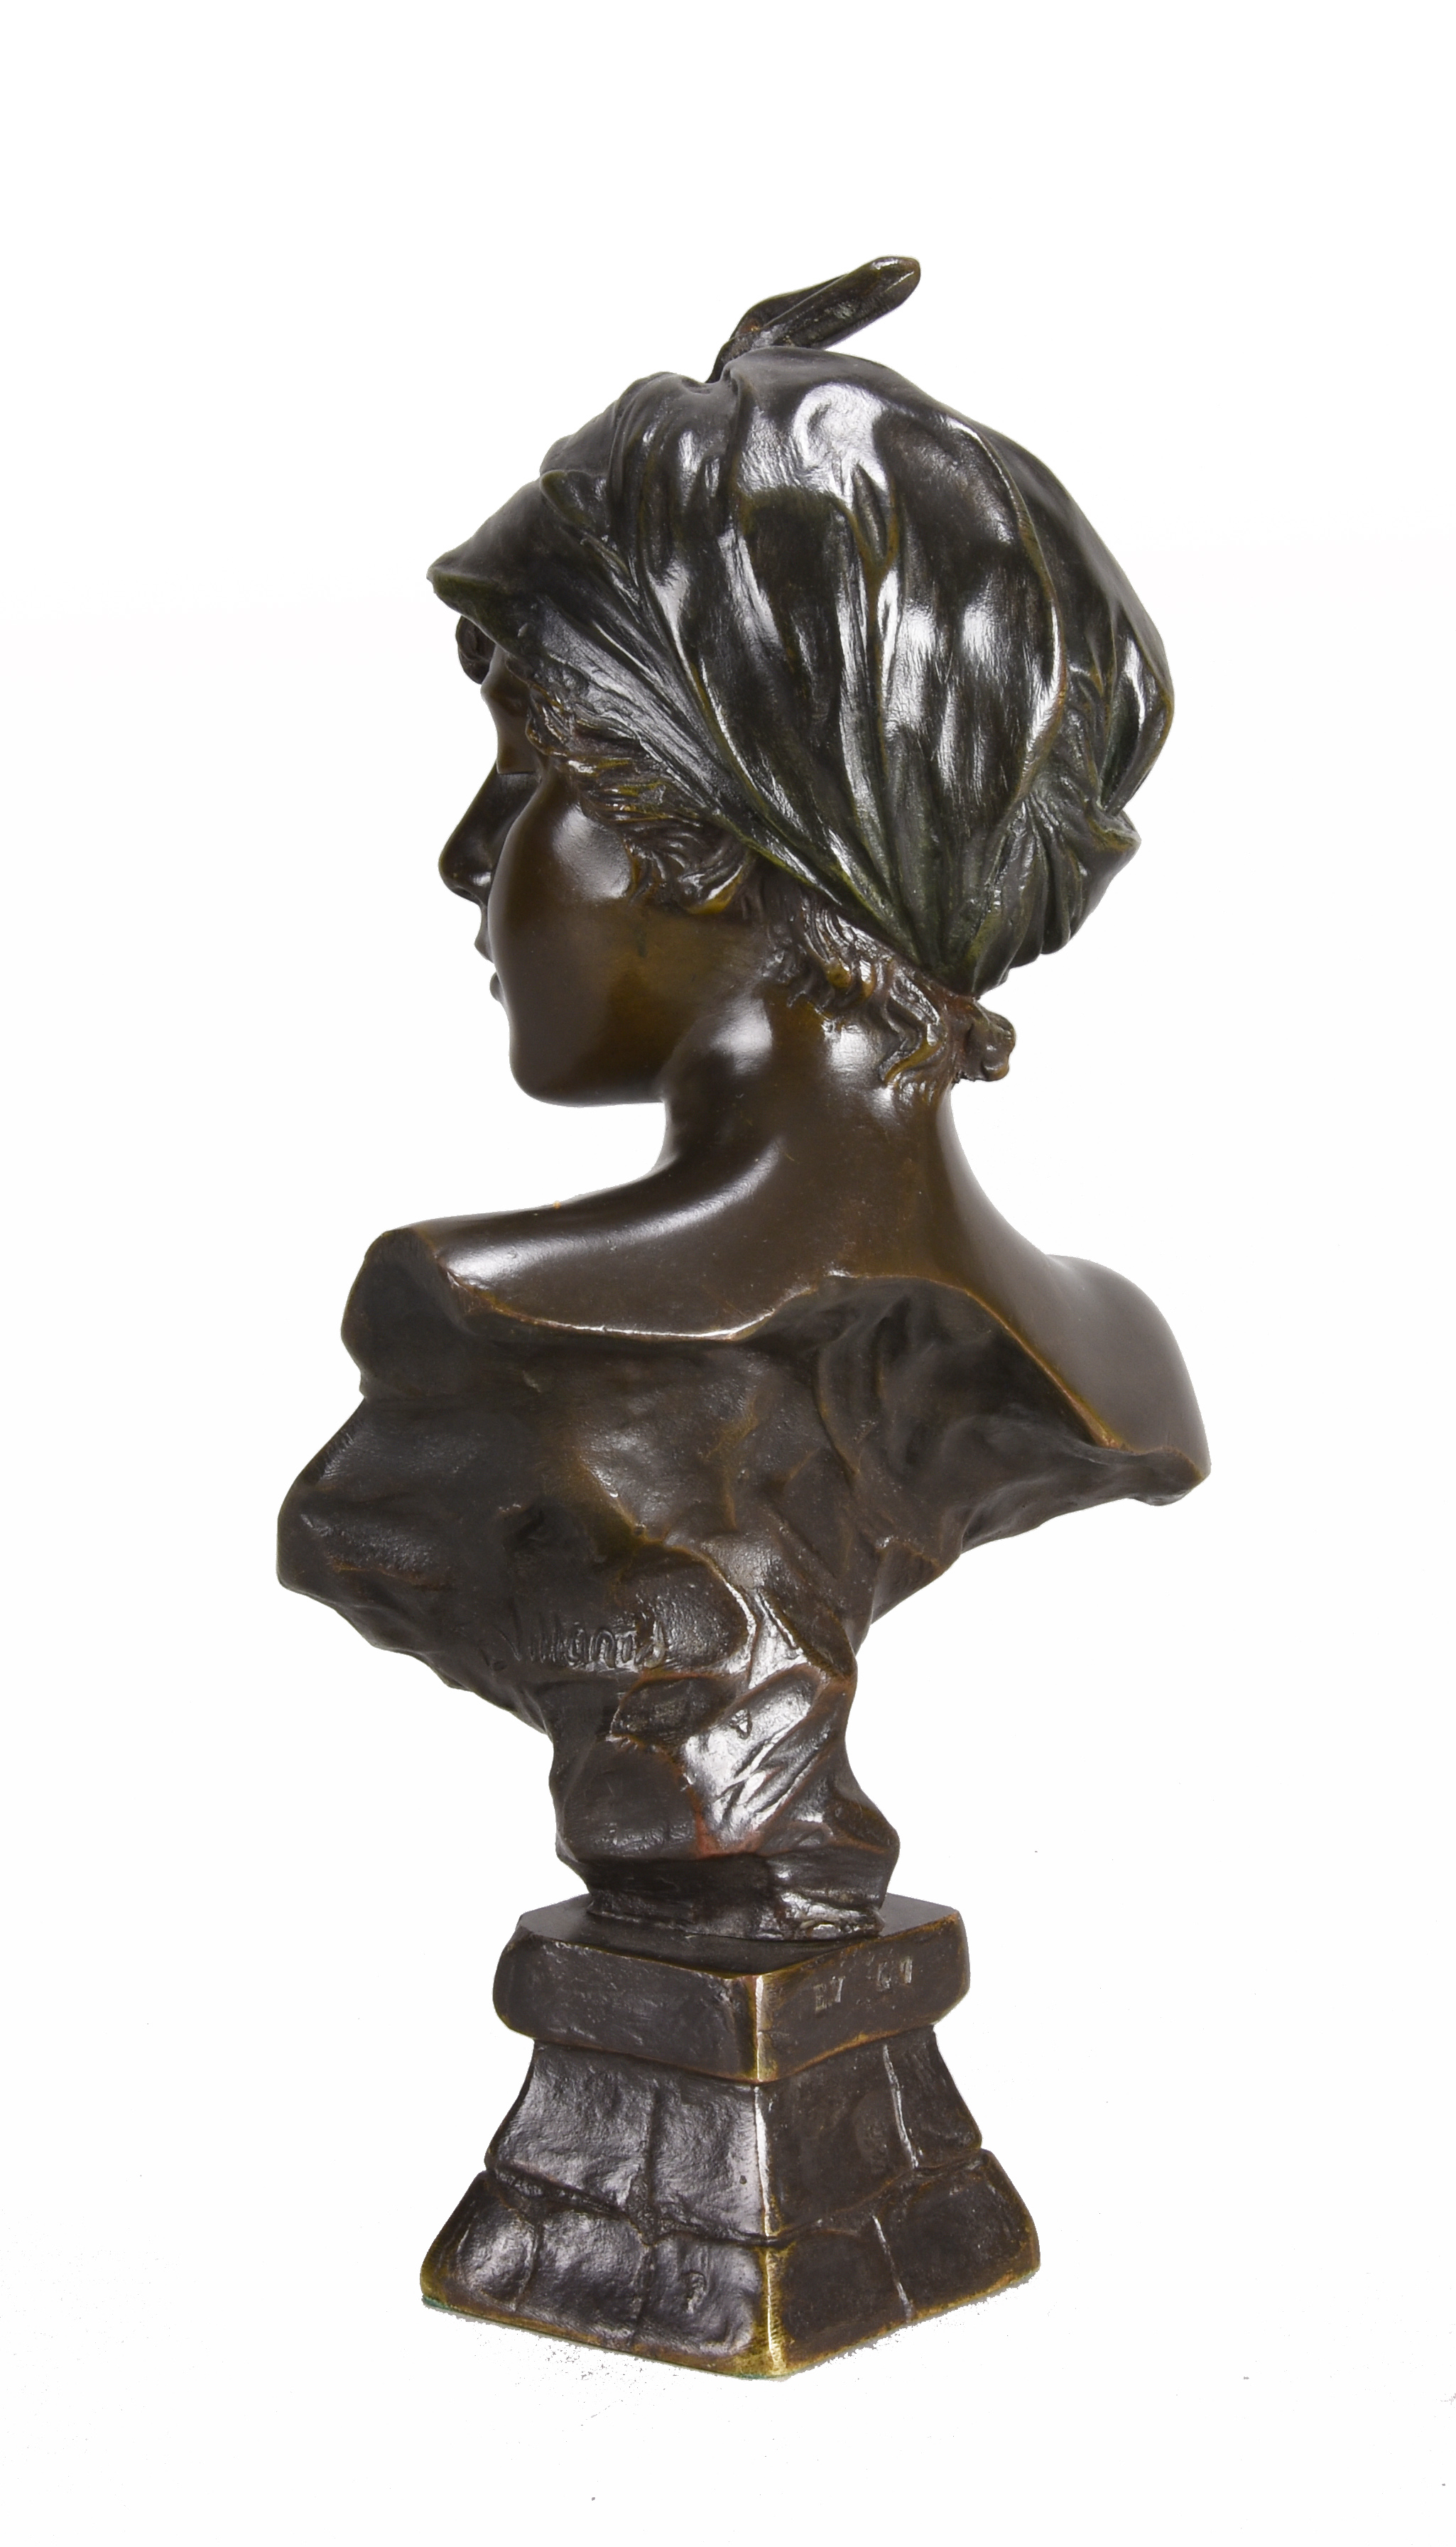 Lot 131 - Emmanuel Villanis (1858 ~ 1914) French Art Nouveau bronze bust of 'Javotte'. Signed E Villanis